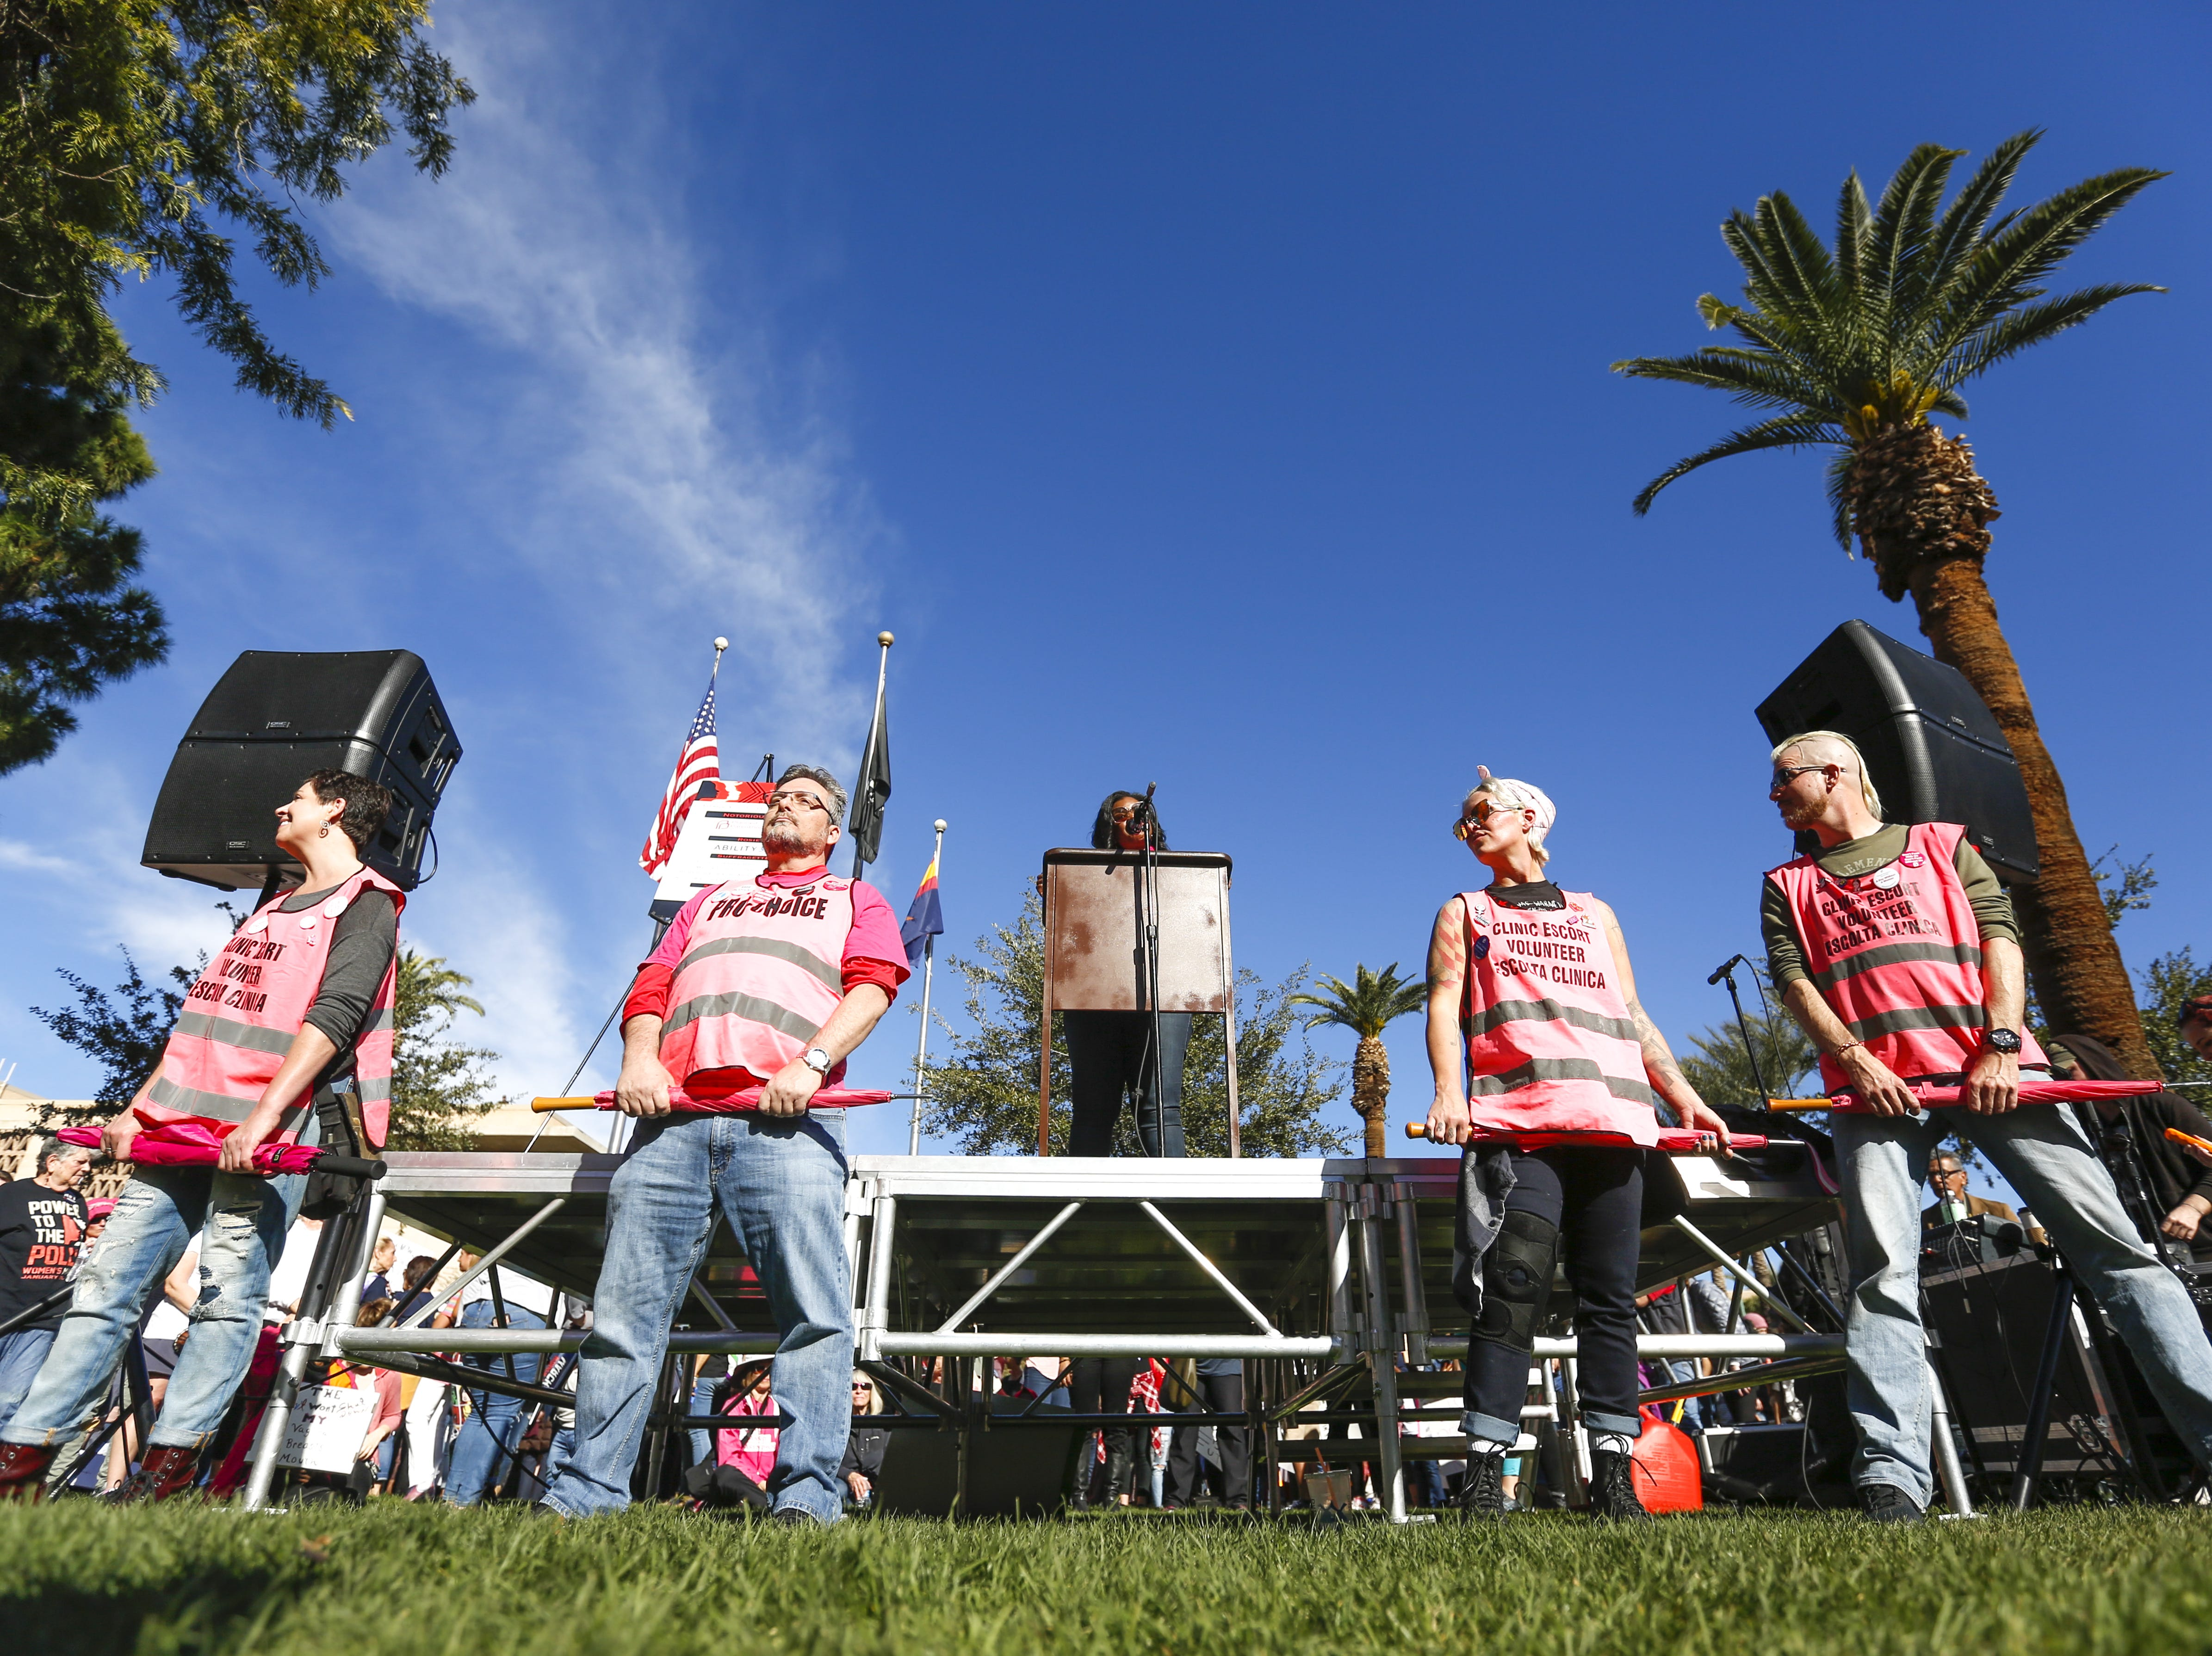 AZ Clinic Defense Force members (from left to right) Tina Nien Stan Tierney, Sarah Henry and Dean Robitaille stand between the stage and the crowd at the Phoenix Women's March on Jan. 19, 2019, at the Arizona Capitol. The AZ Clinic Defense Force escorts women to appointments when they may face protestors, such as outside of Planned Parenthood facilities.